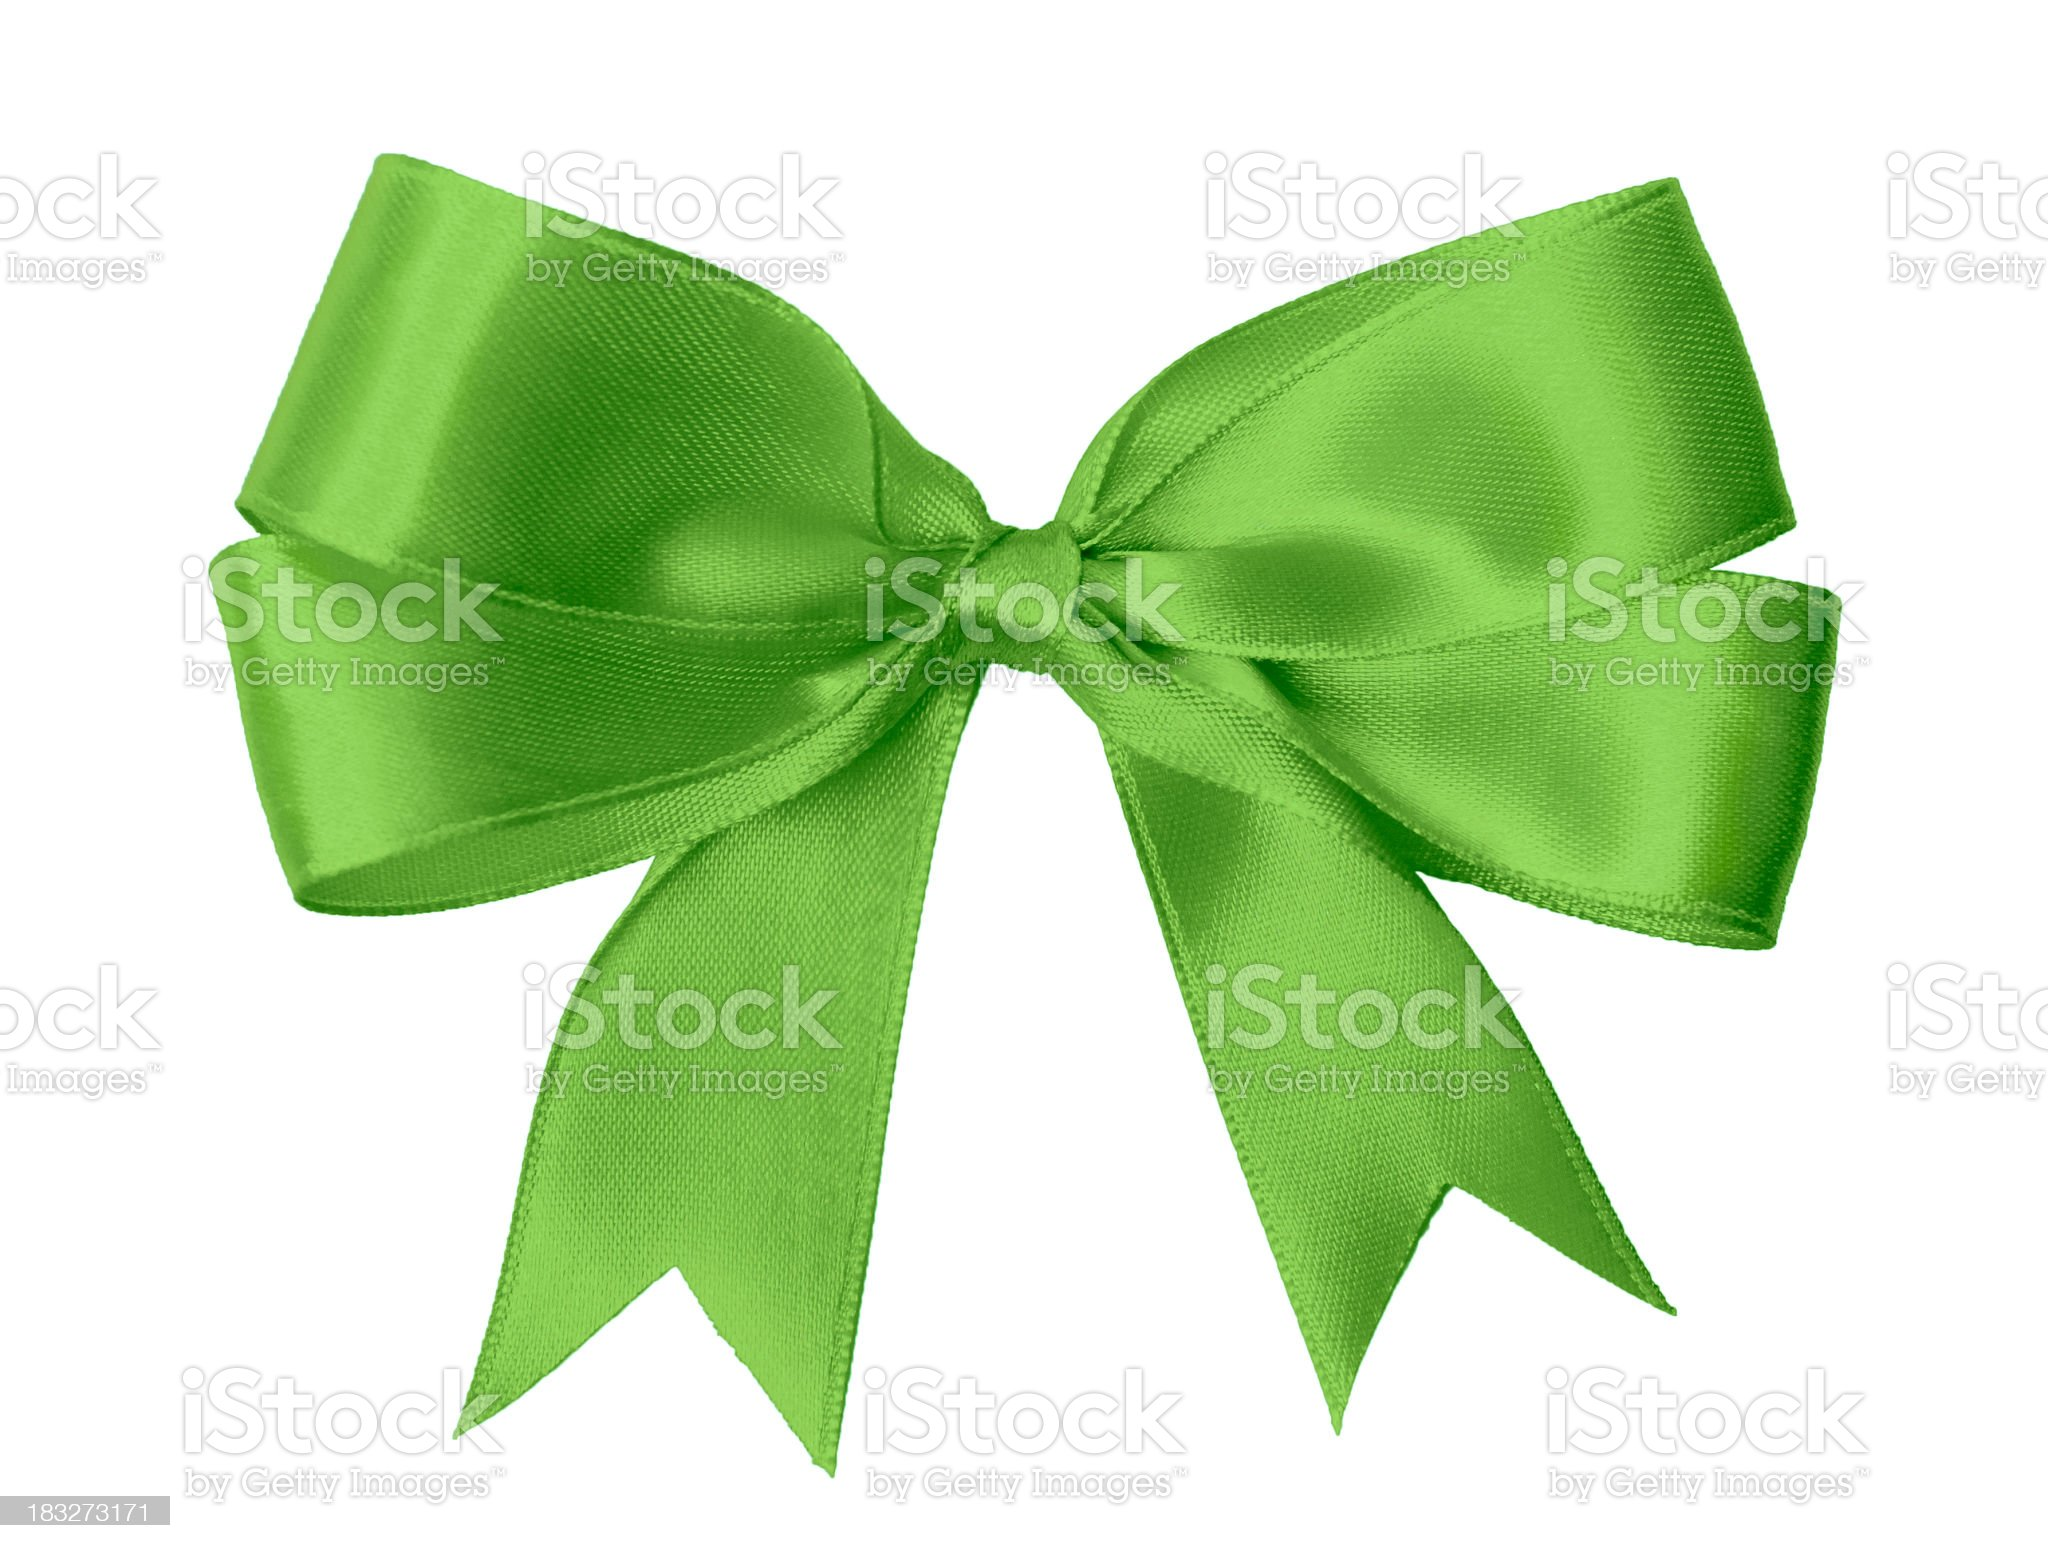 A bright green bow isolated on a white background royalty-free stock photo